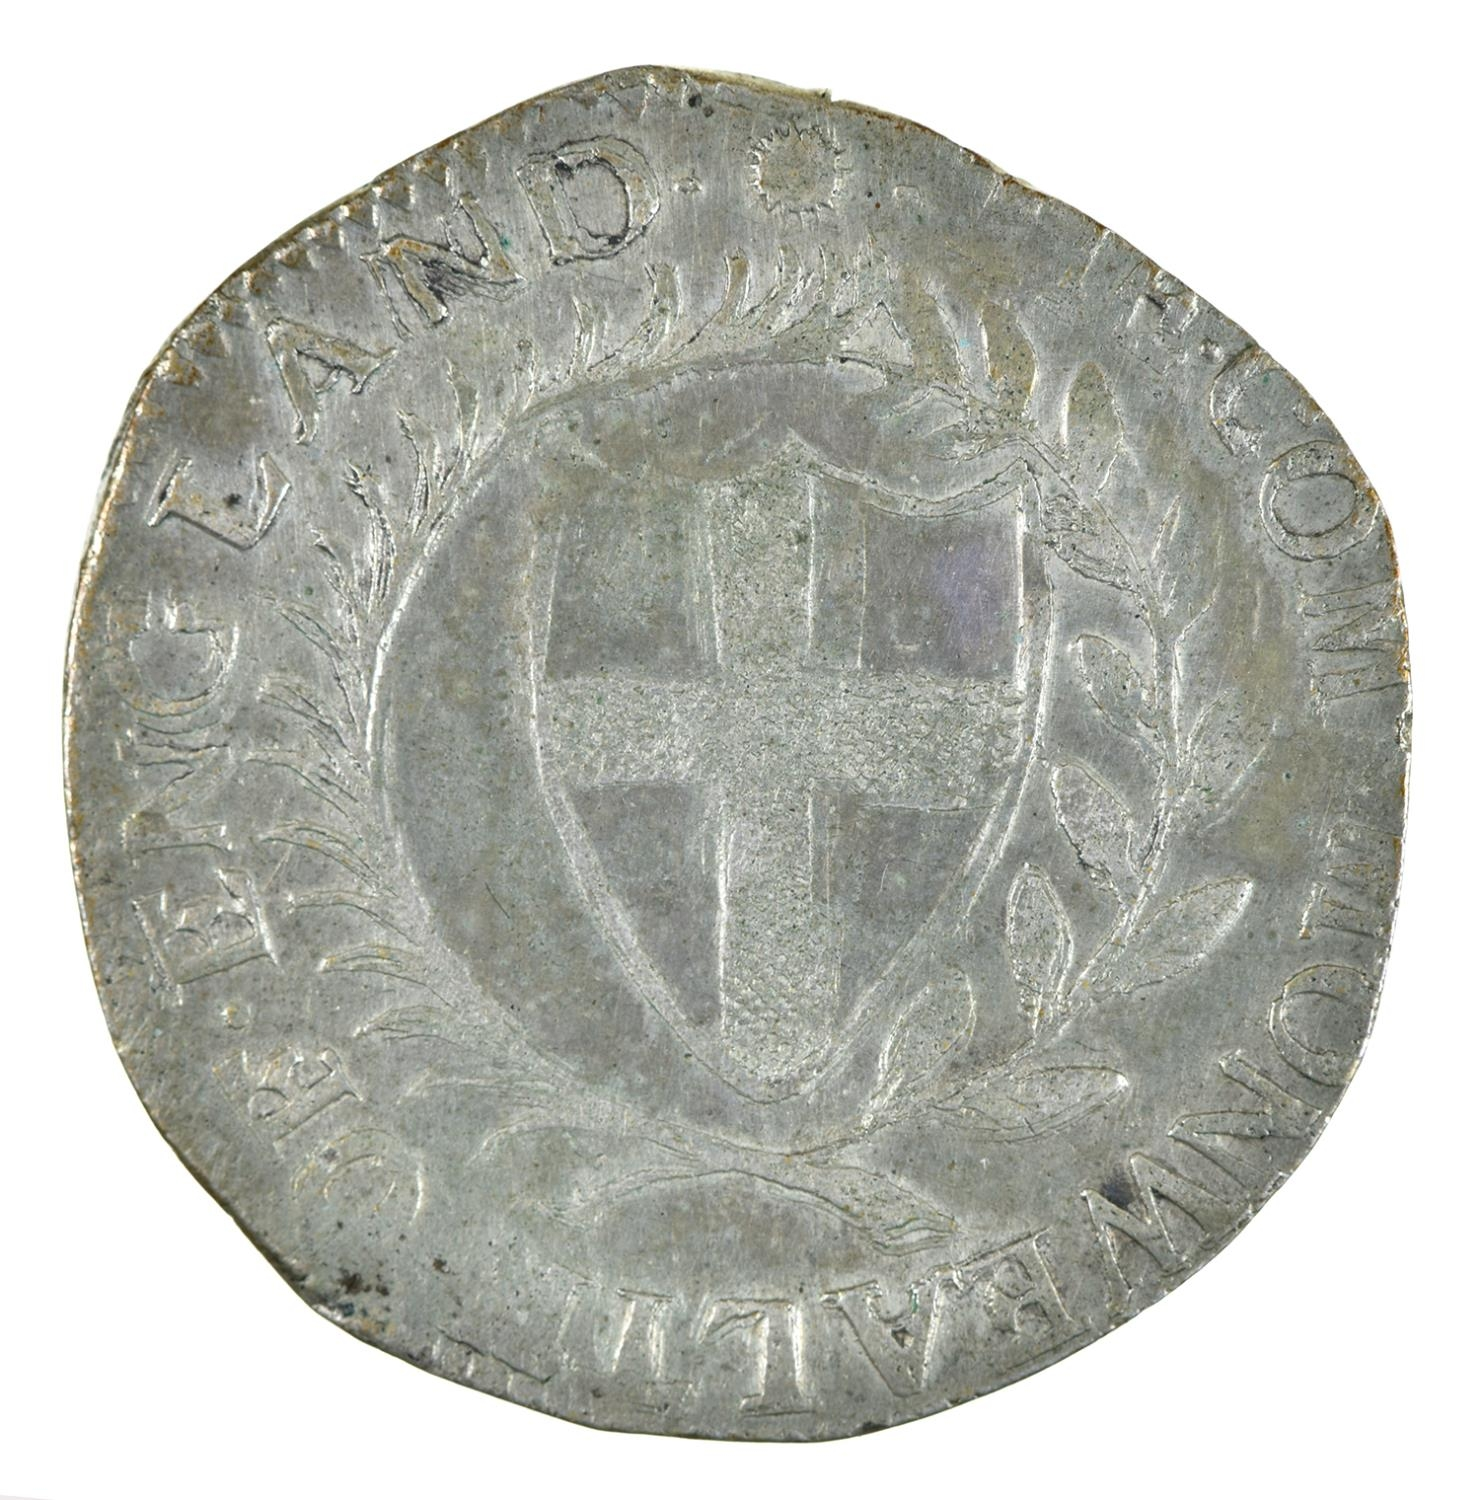 England, Commonwealth, Halfcrown, 1652, (extremely weak 5 at date), possibly a contemporary - Image 2 of 2